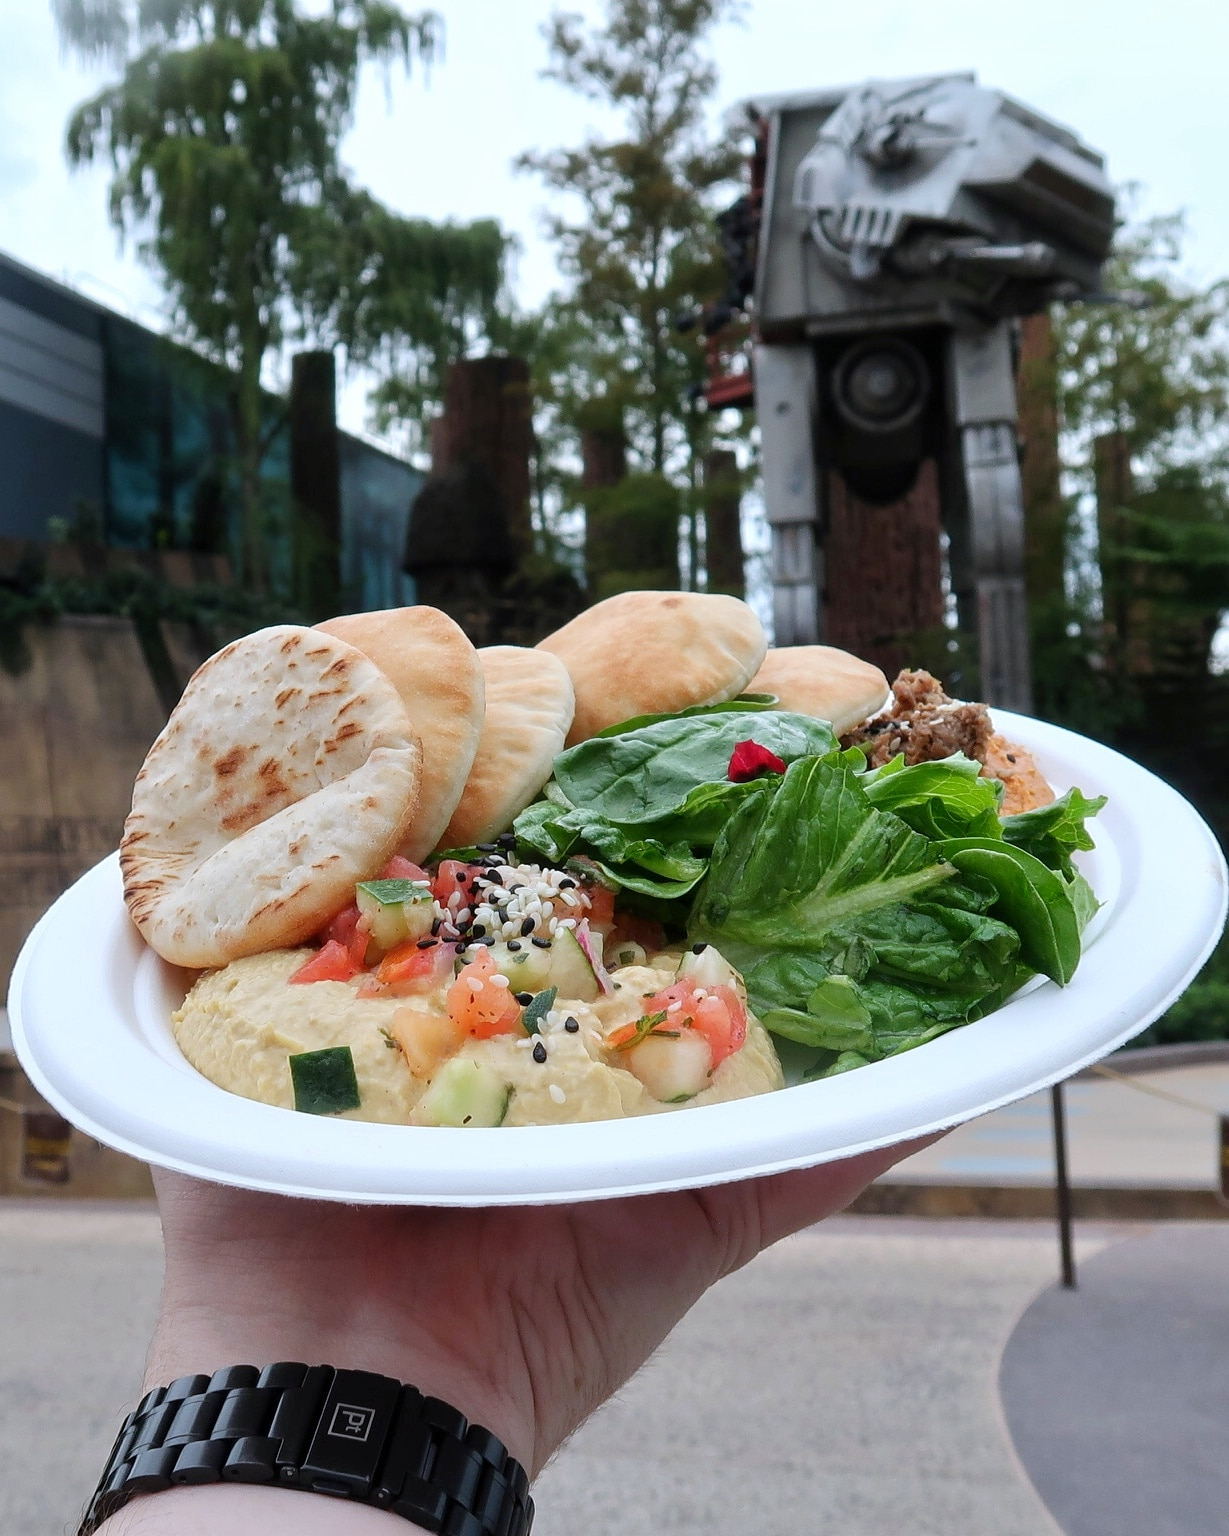 Vegan Two Suns Hummus at Backlot Express in Disney's Hollywood Studios